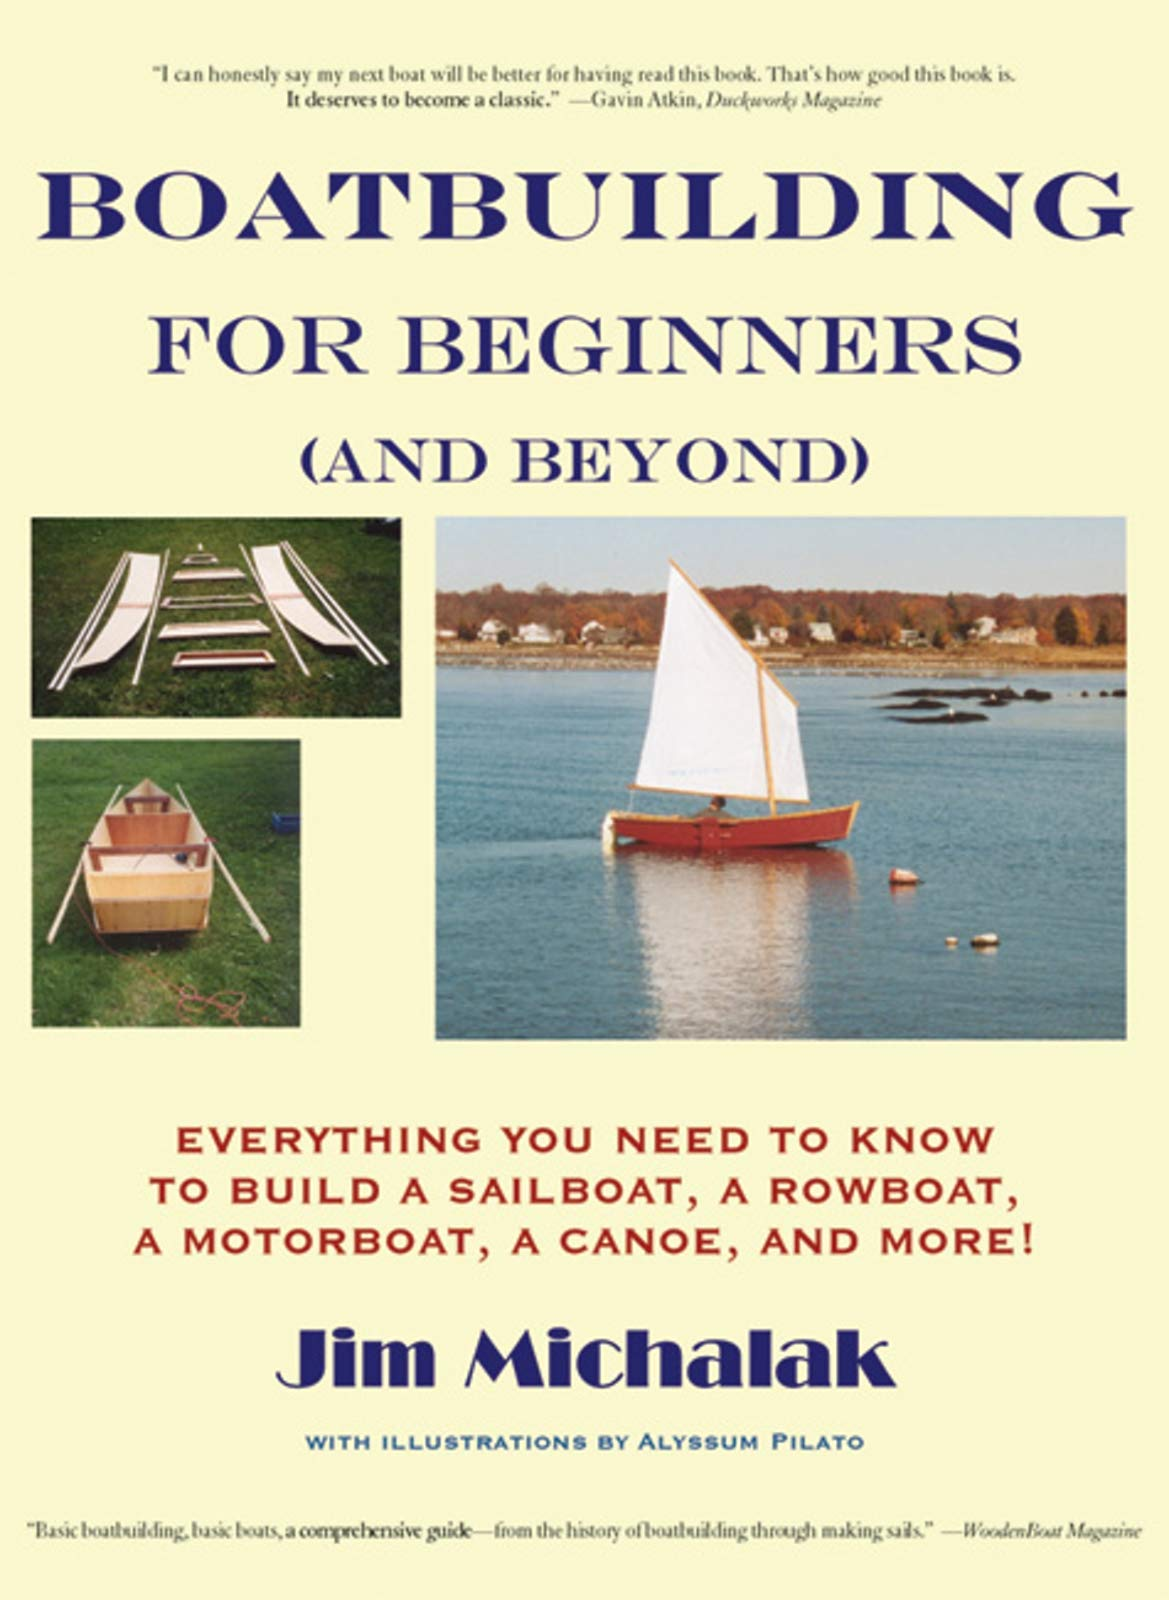 Boatbuilding for Beginners (and Beyond): Everything You Need to Know to Build a Sailboat, a Rowboat, a Motorboat, a Canoe, and More! by Brand: Breakaway Books